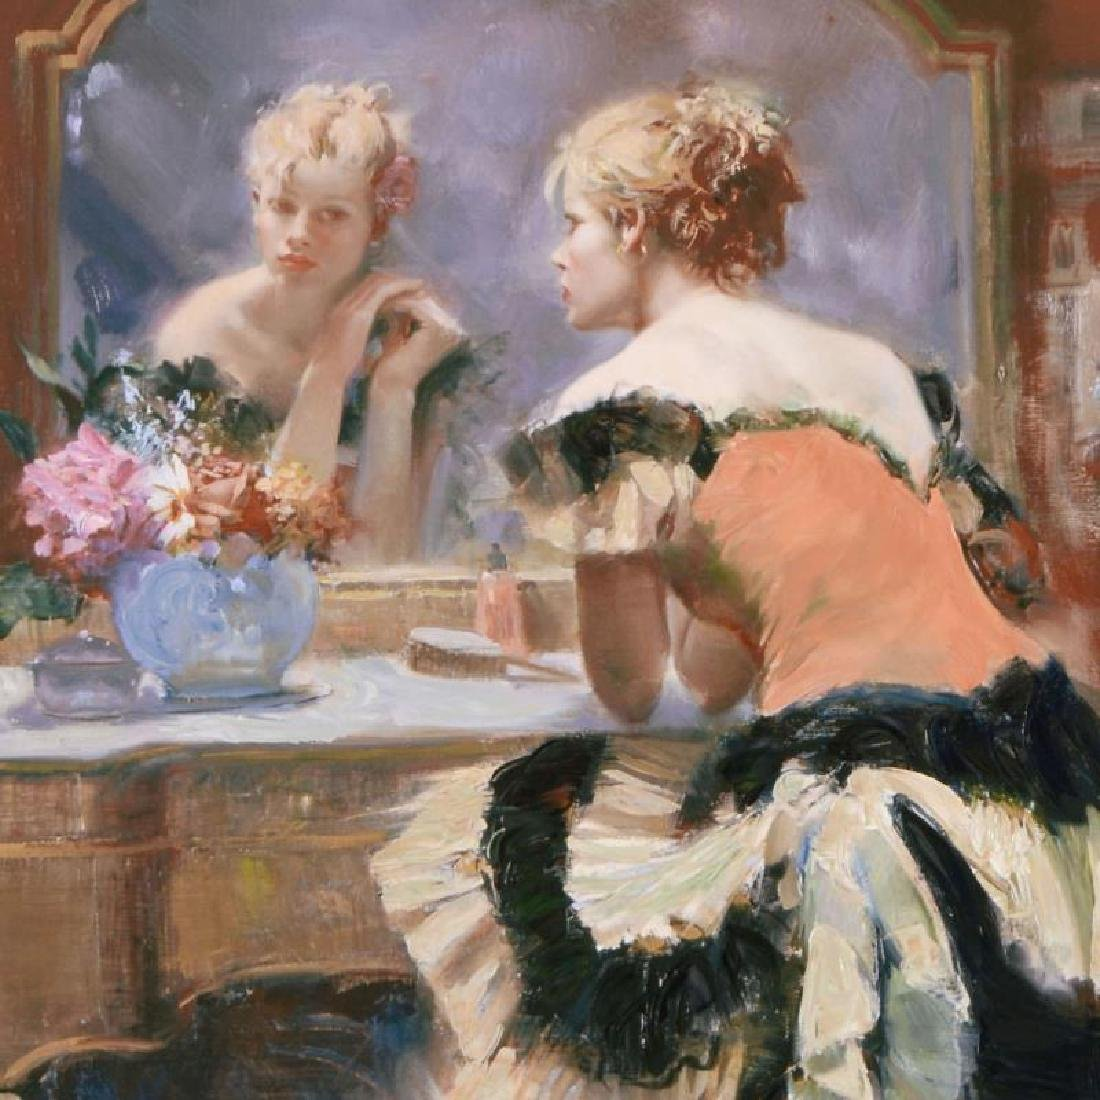 Before the Show by Pino (1939-2010) - 2